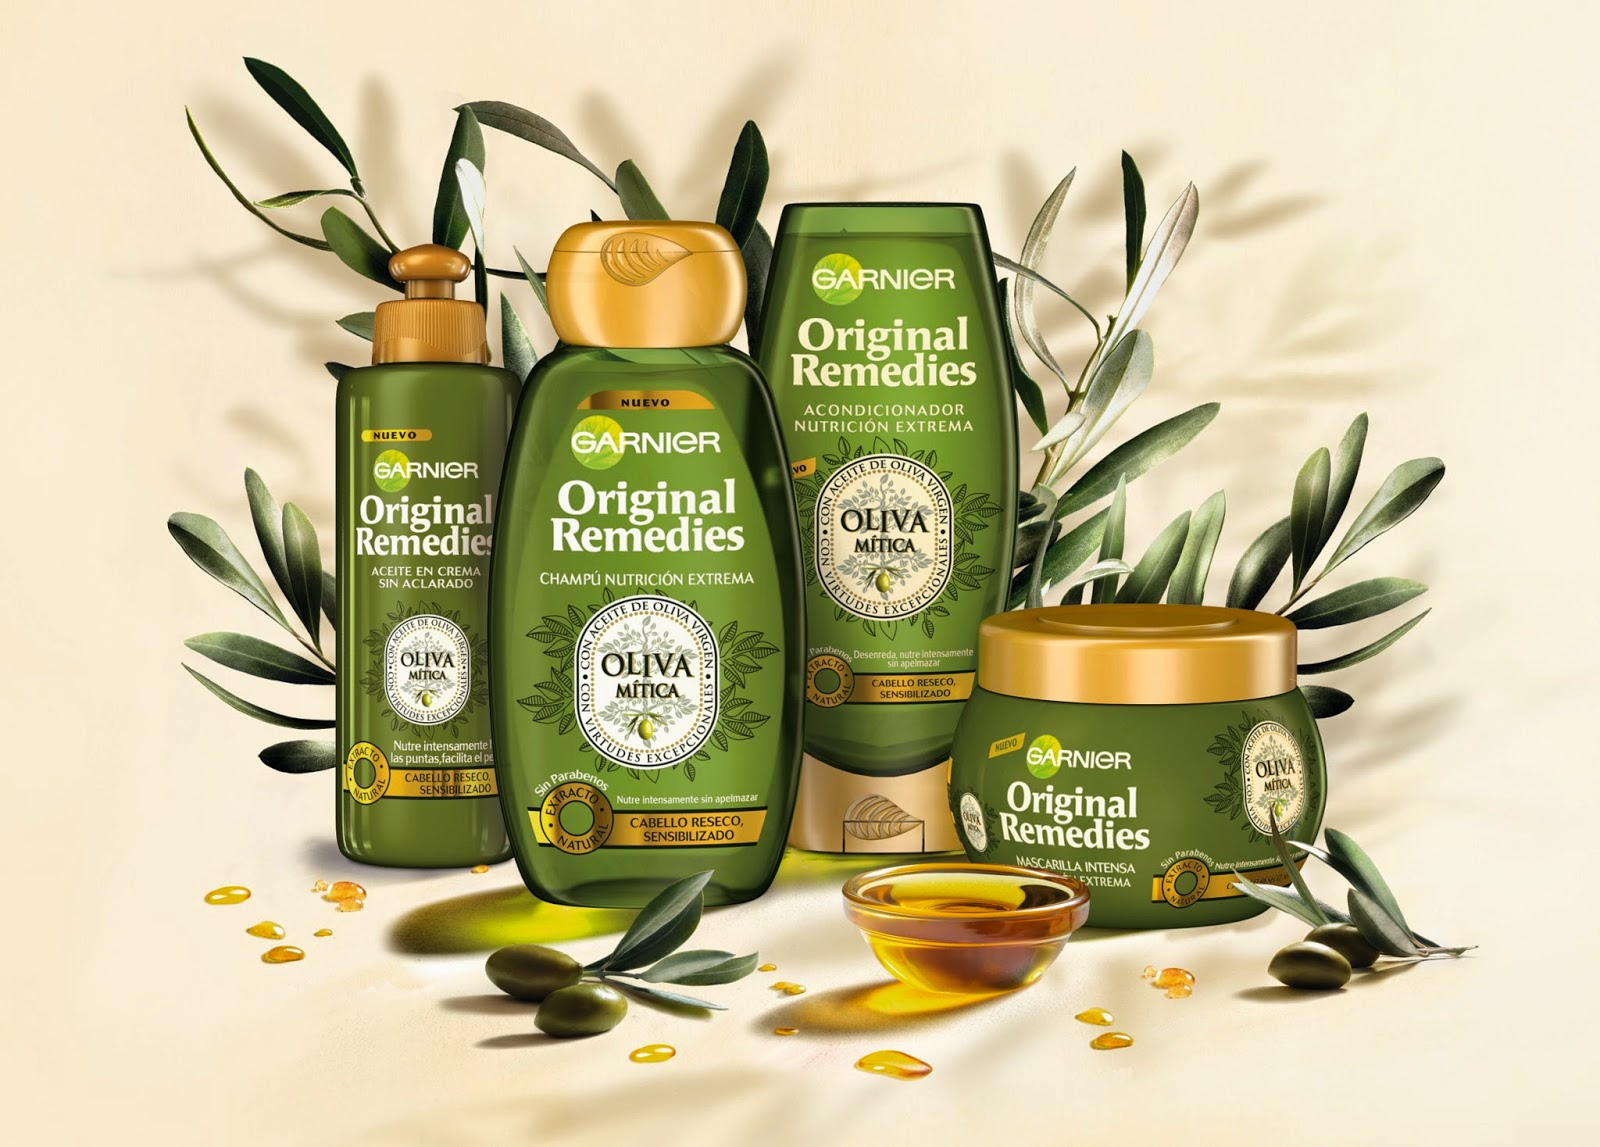 Original_Remedies_Garnier_Bymyheels